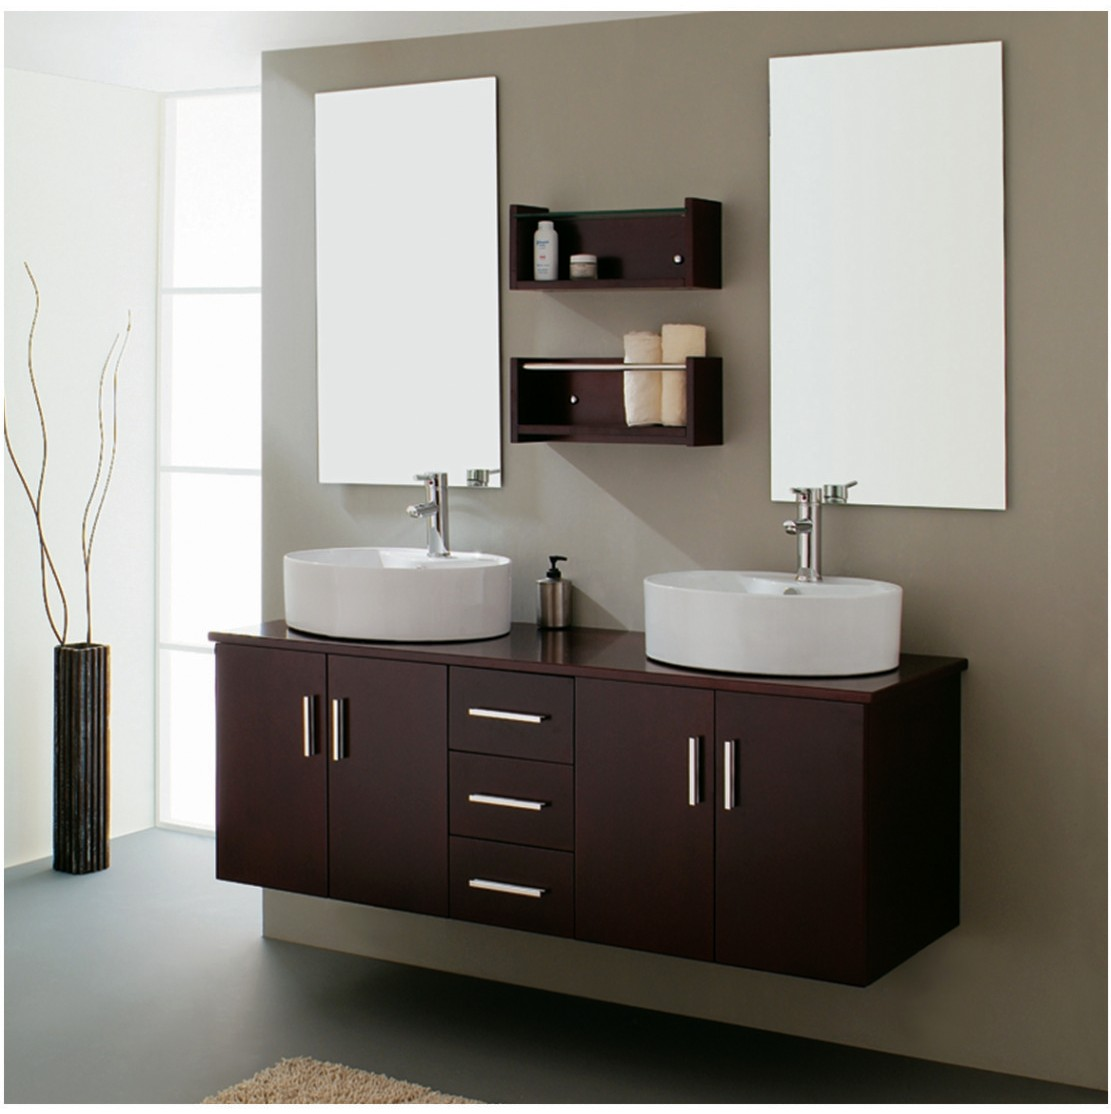 Modern bathroom cabinet - Click To See Larger Image